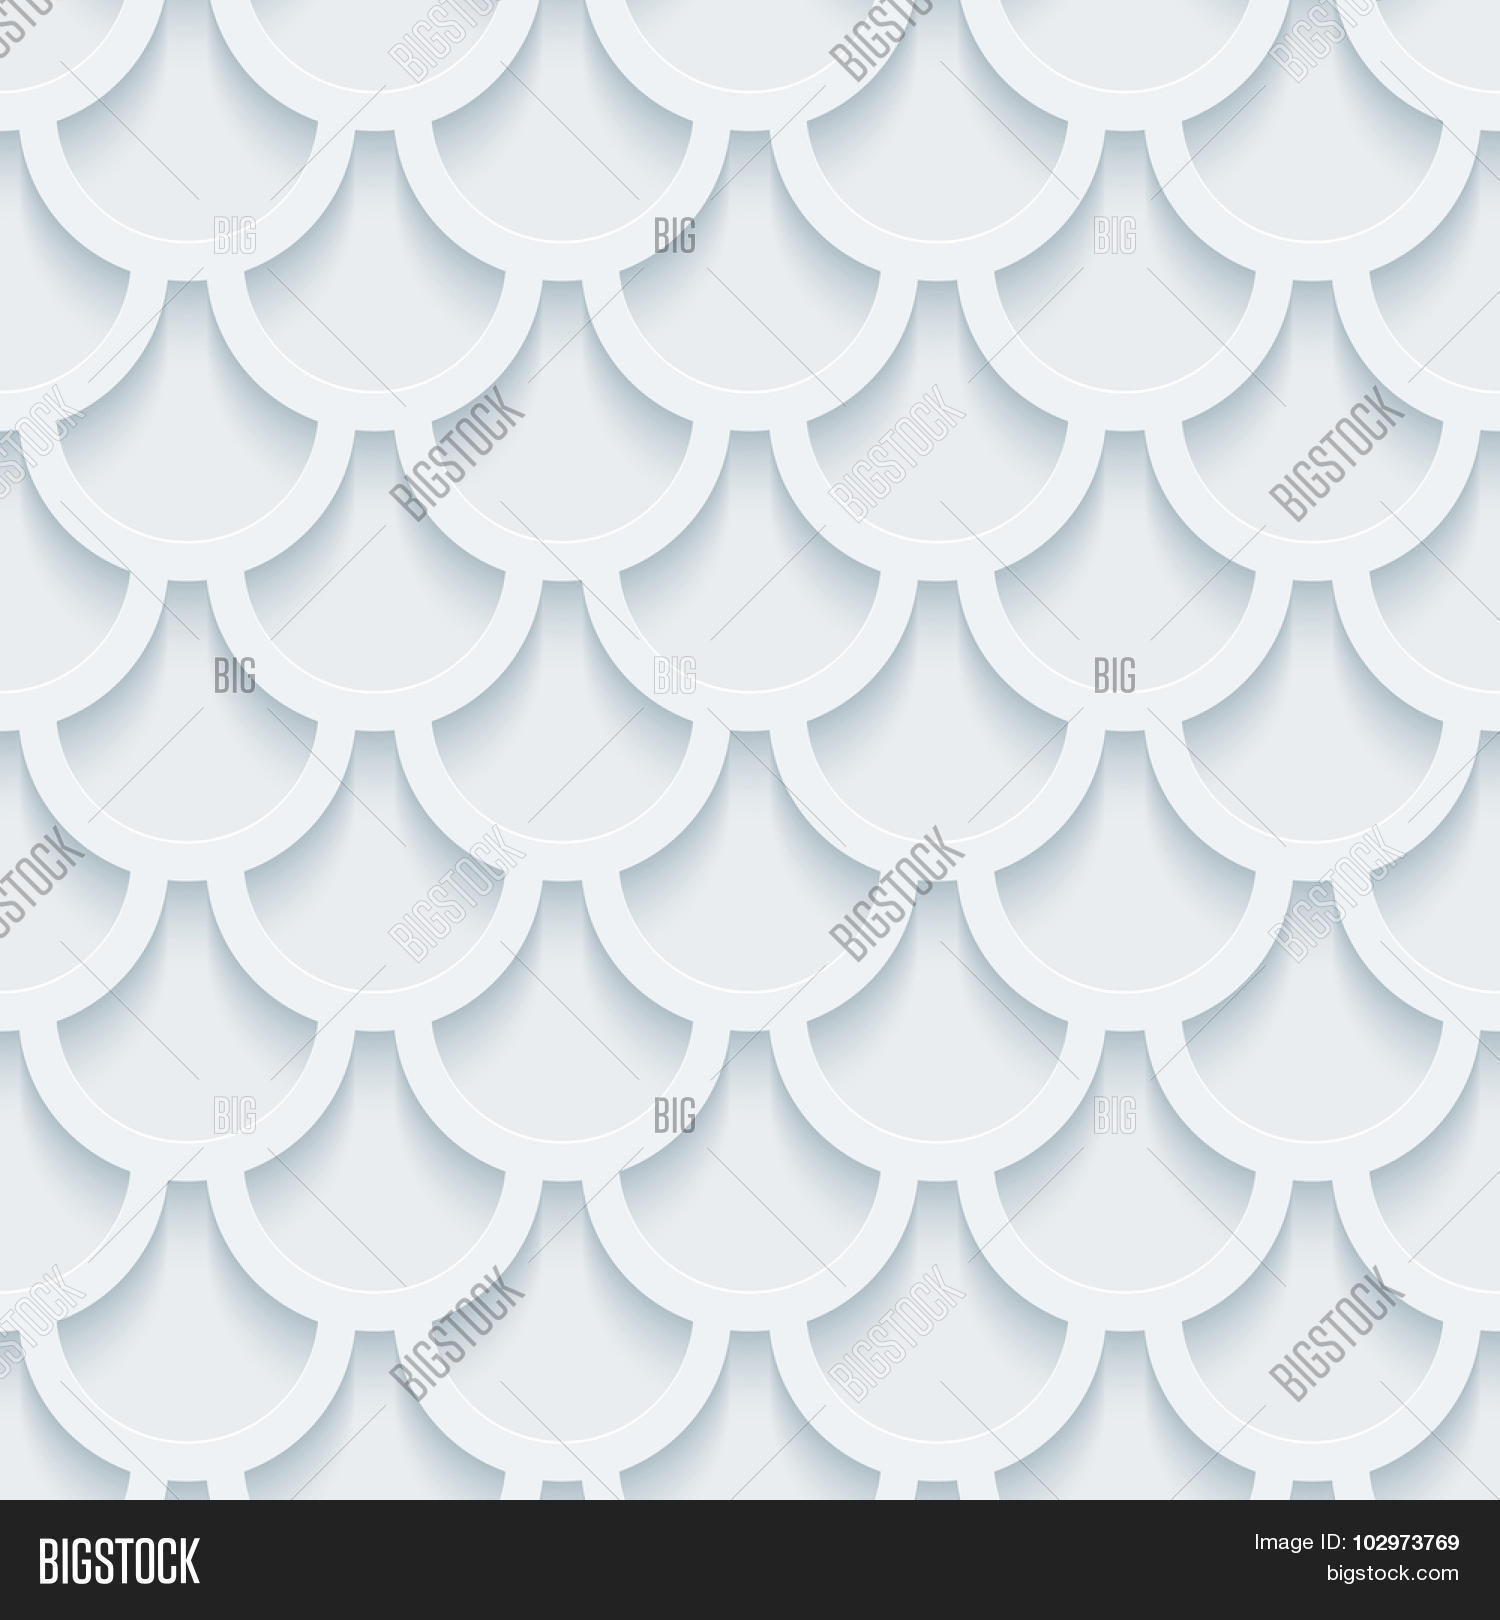 Fish scale 3d seamless background image photo bigstock for Fish scale coke cut